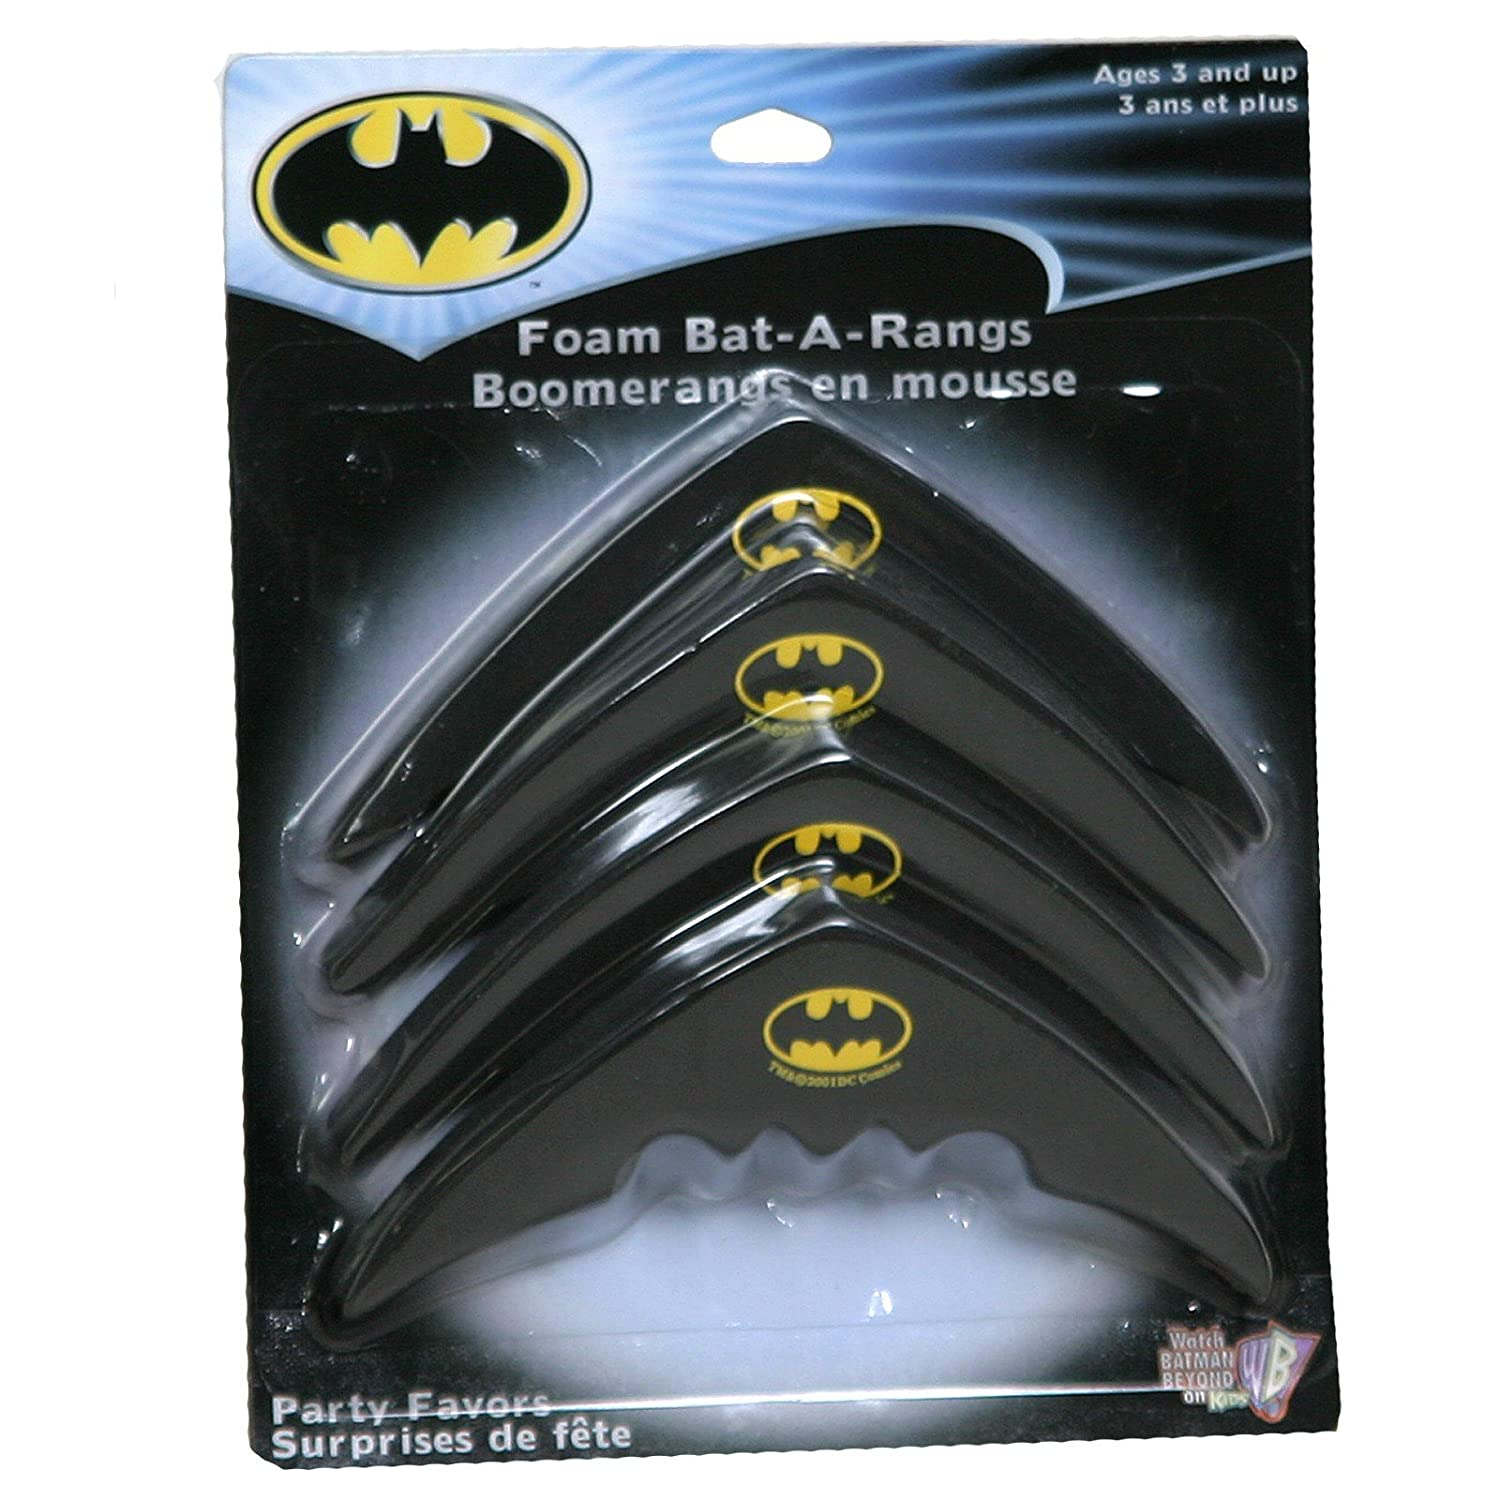 Batman Foam Bat-A-Rangs (4 count)